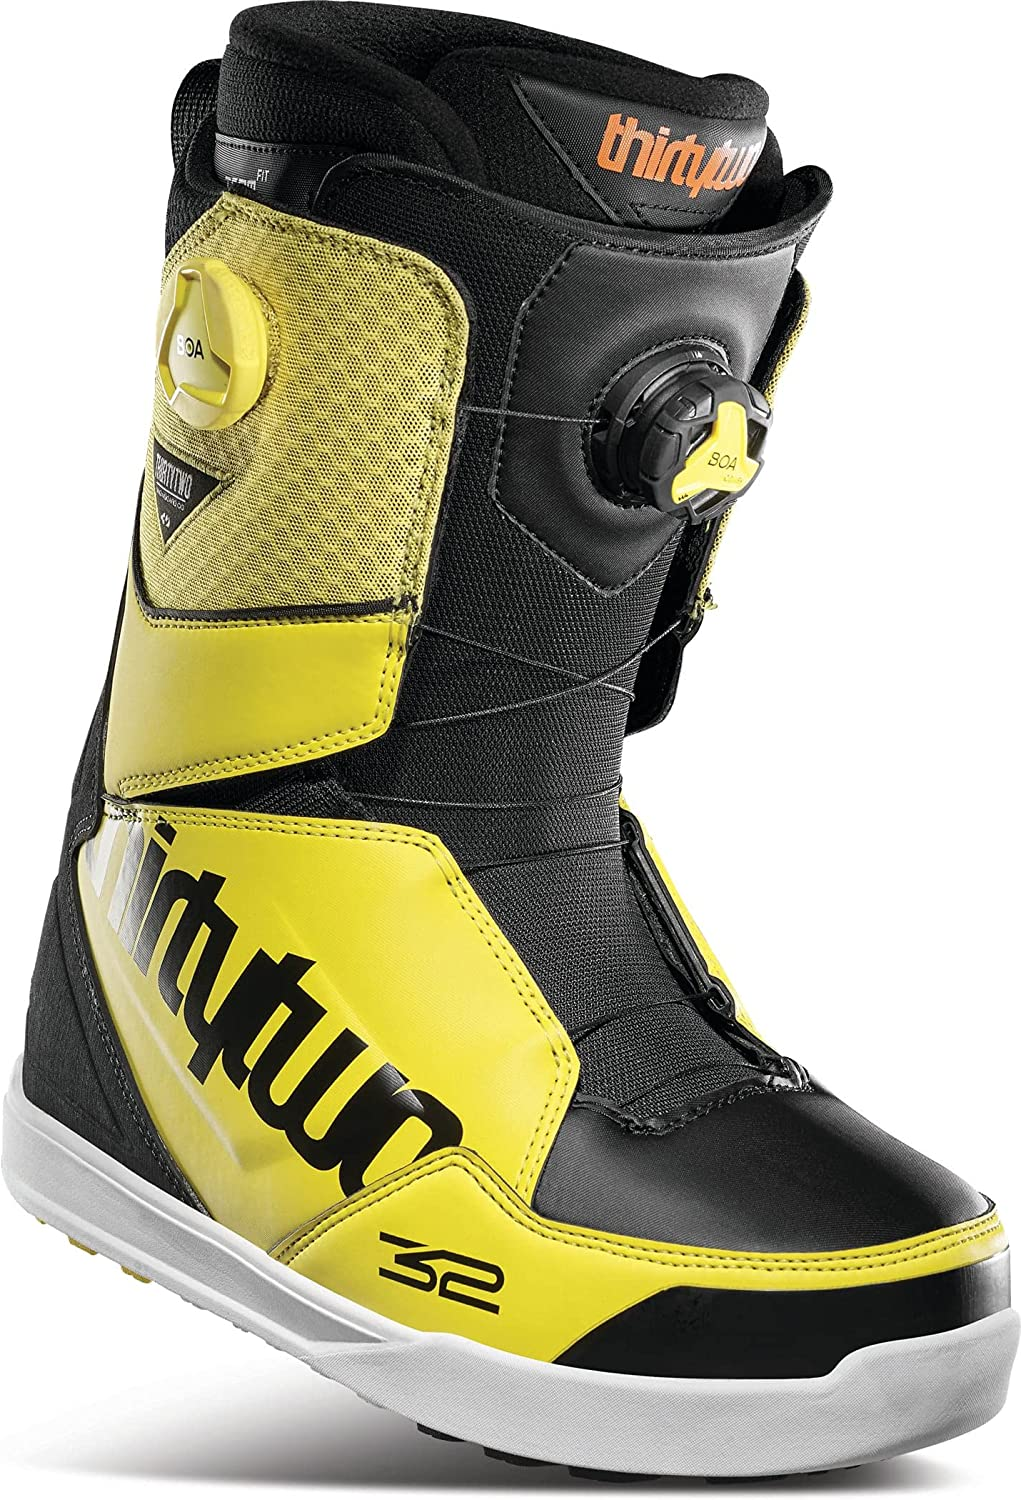 Thirty Two Lashed Double Max 67% OFF BOA Mens Boots Yellow S Direct sale of manufacturer Black Snowboard